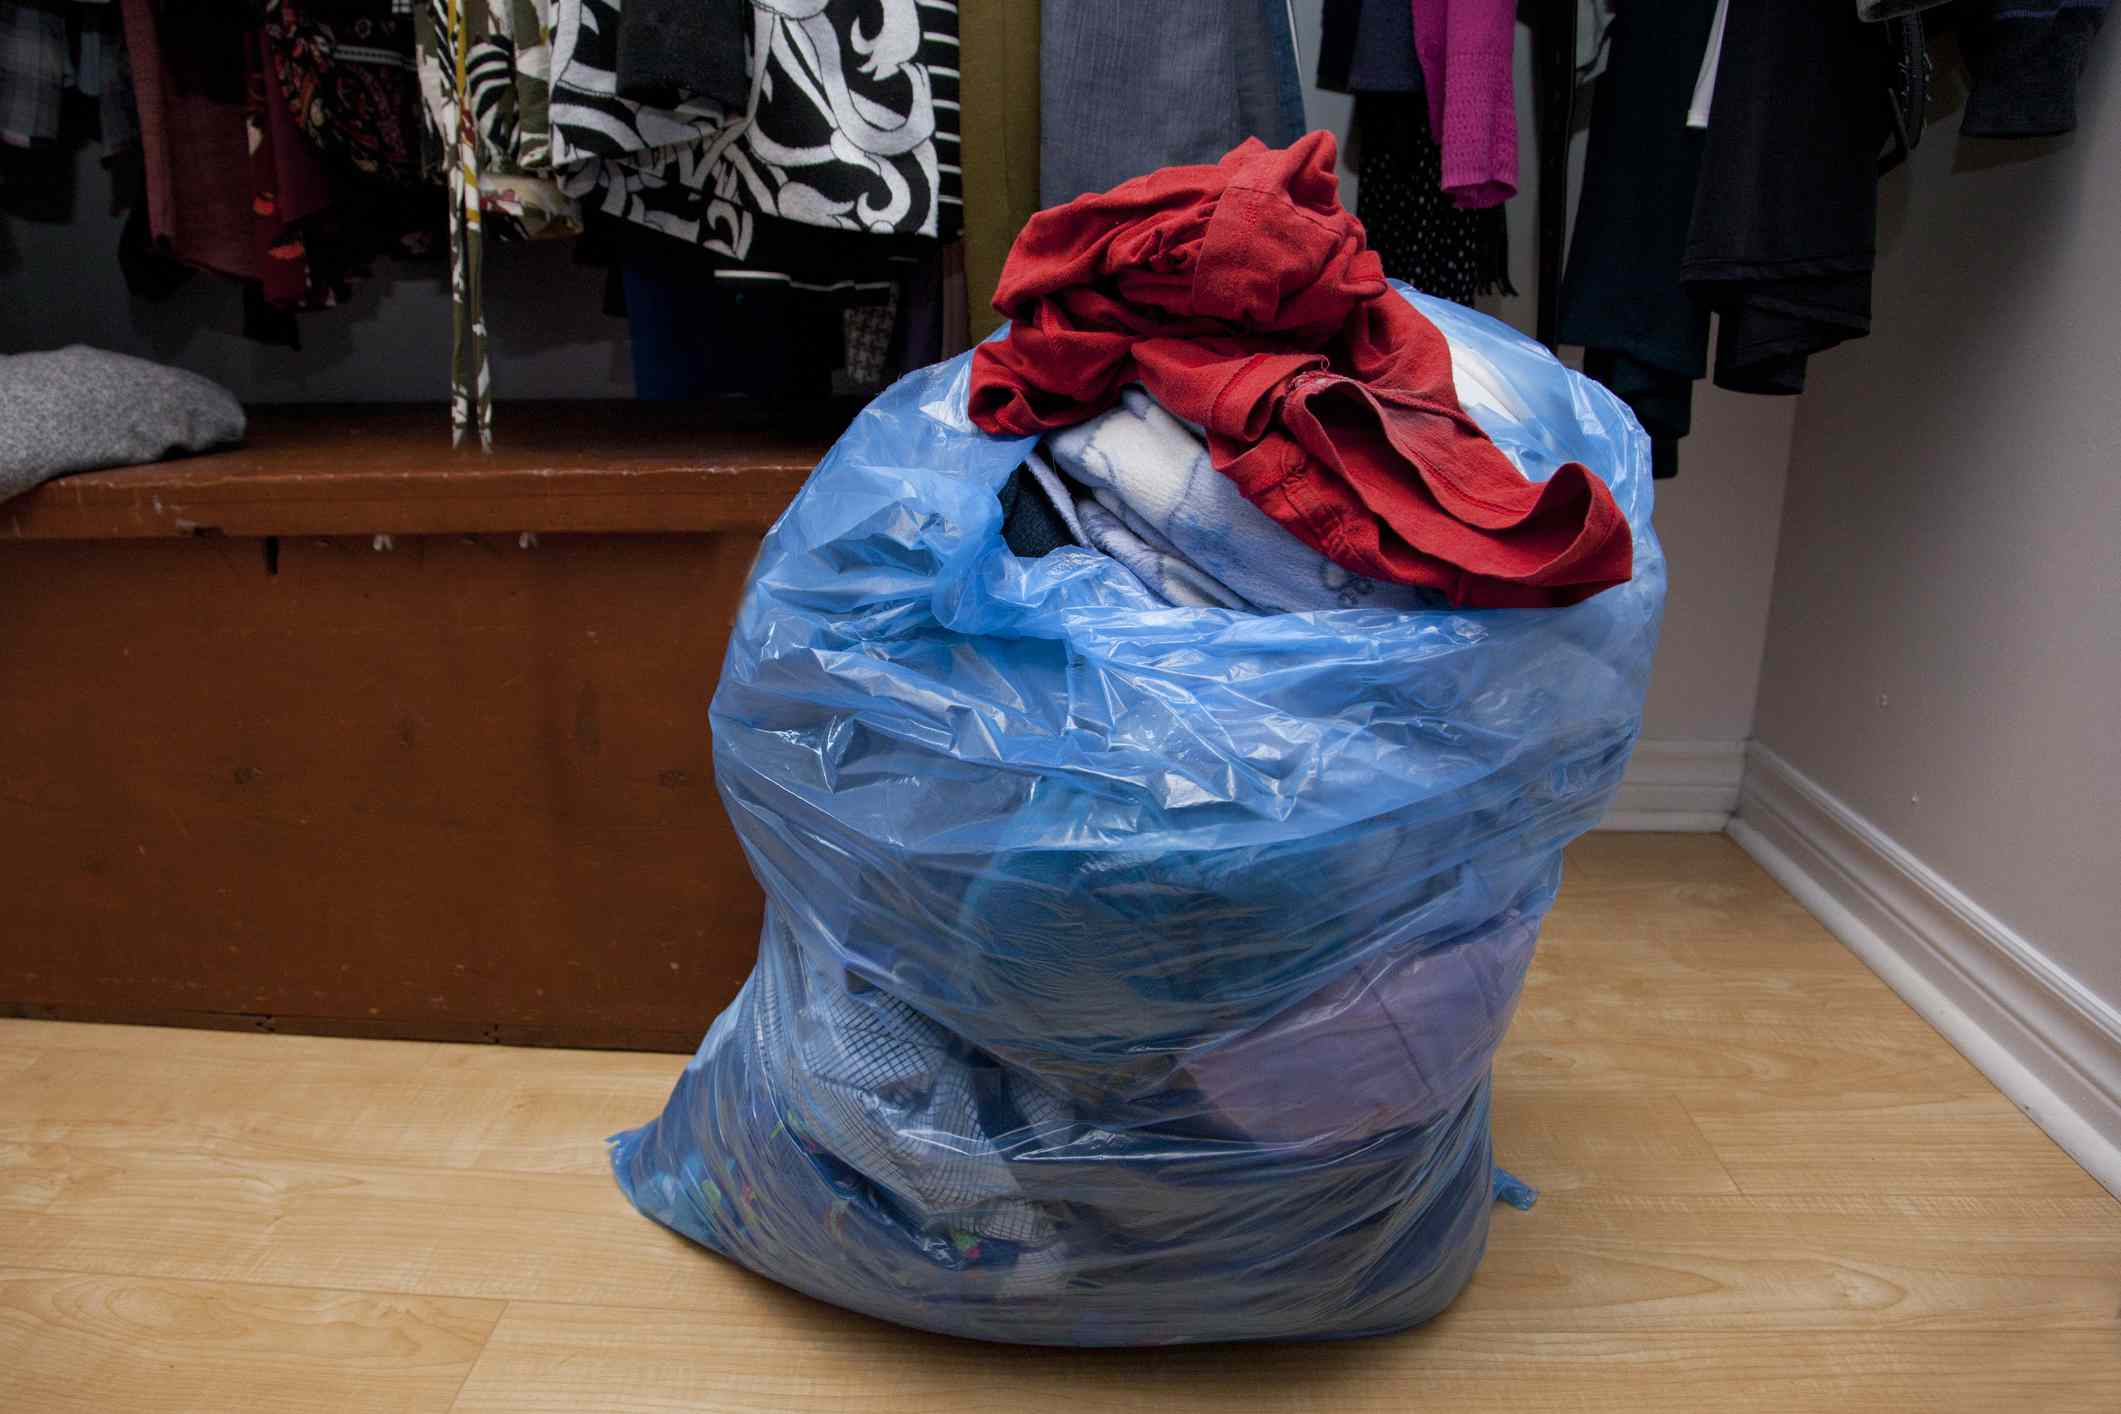 A plastic bag reused to hold clothes.